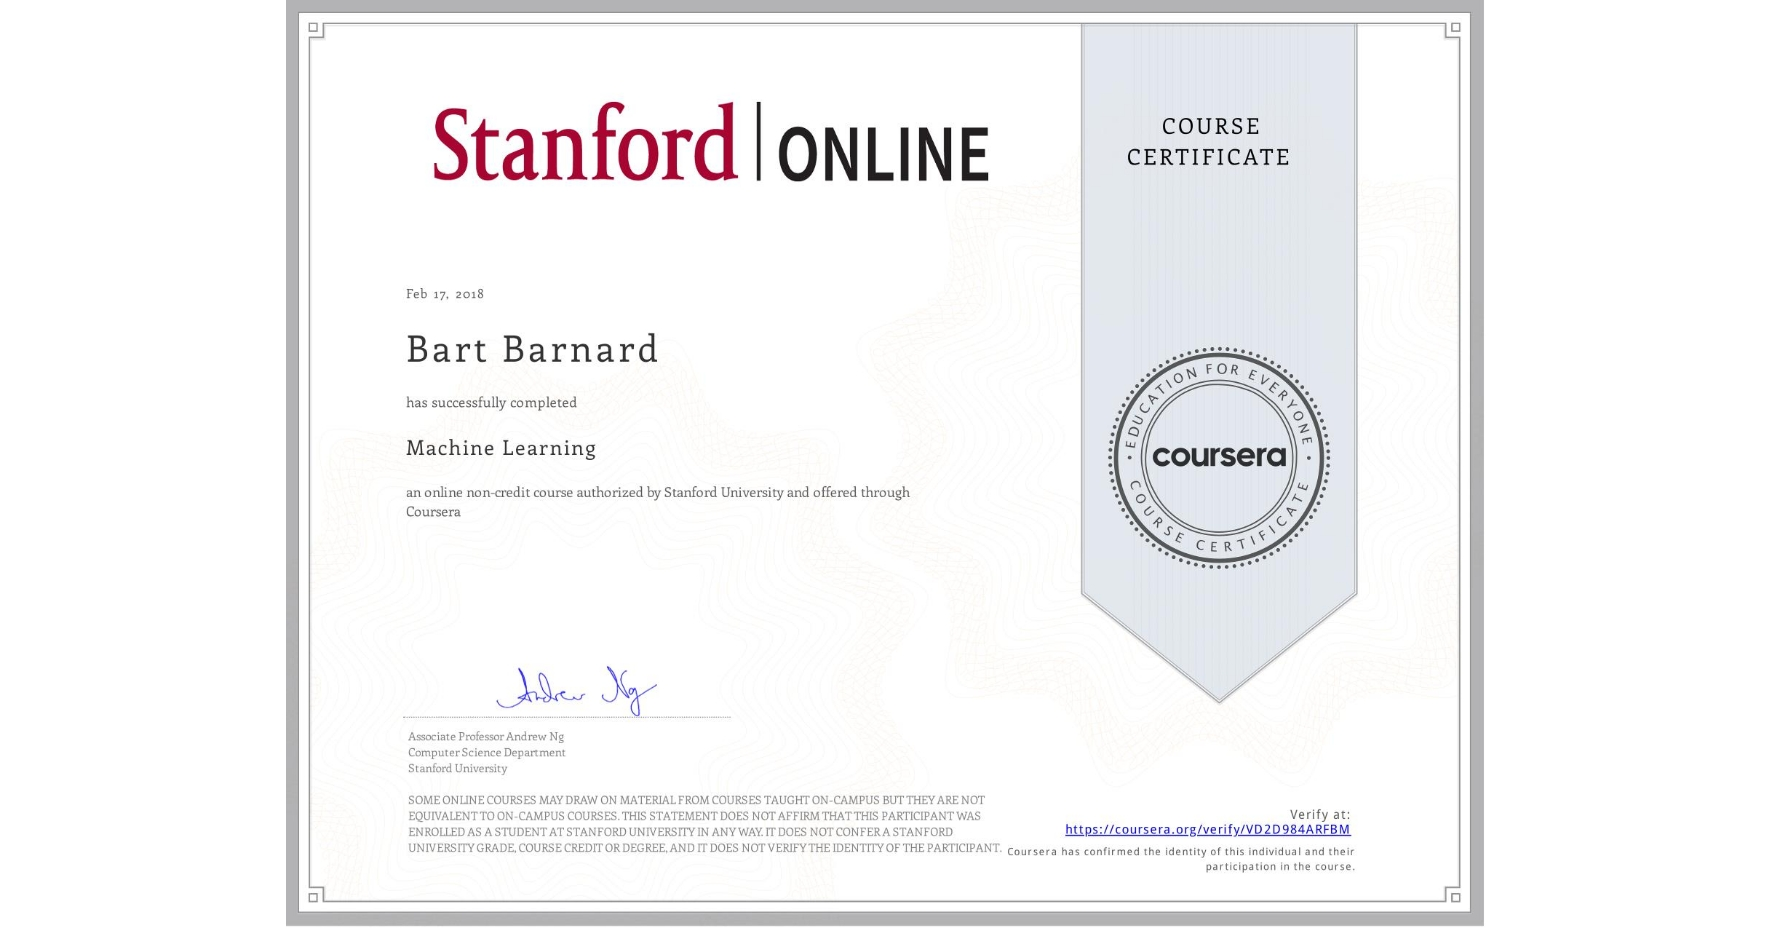 View certificate for Bart Barnard, Machine Learning, an online non-credit course authorized by Stanford University and offered through Coursera